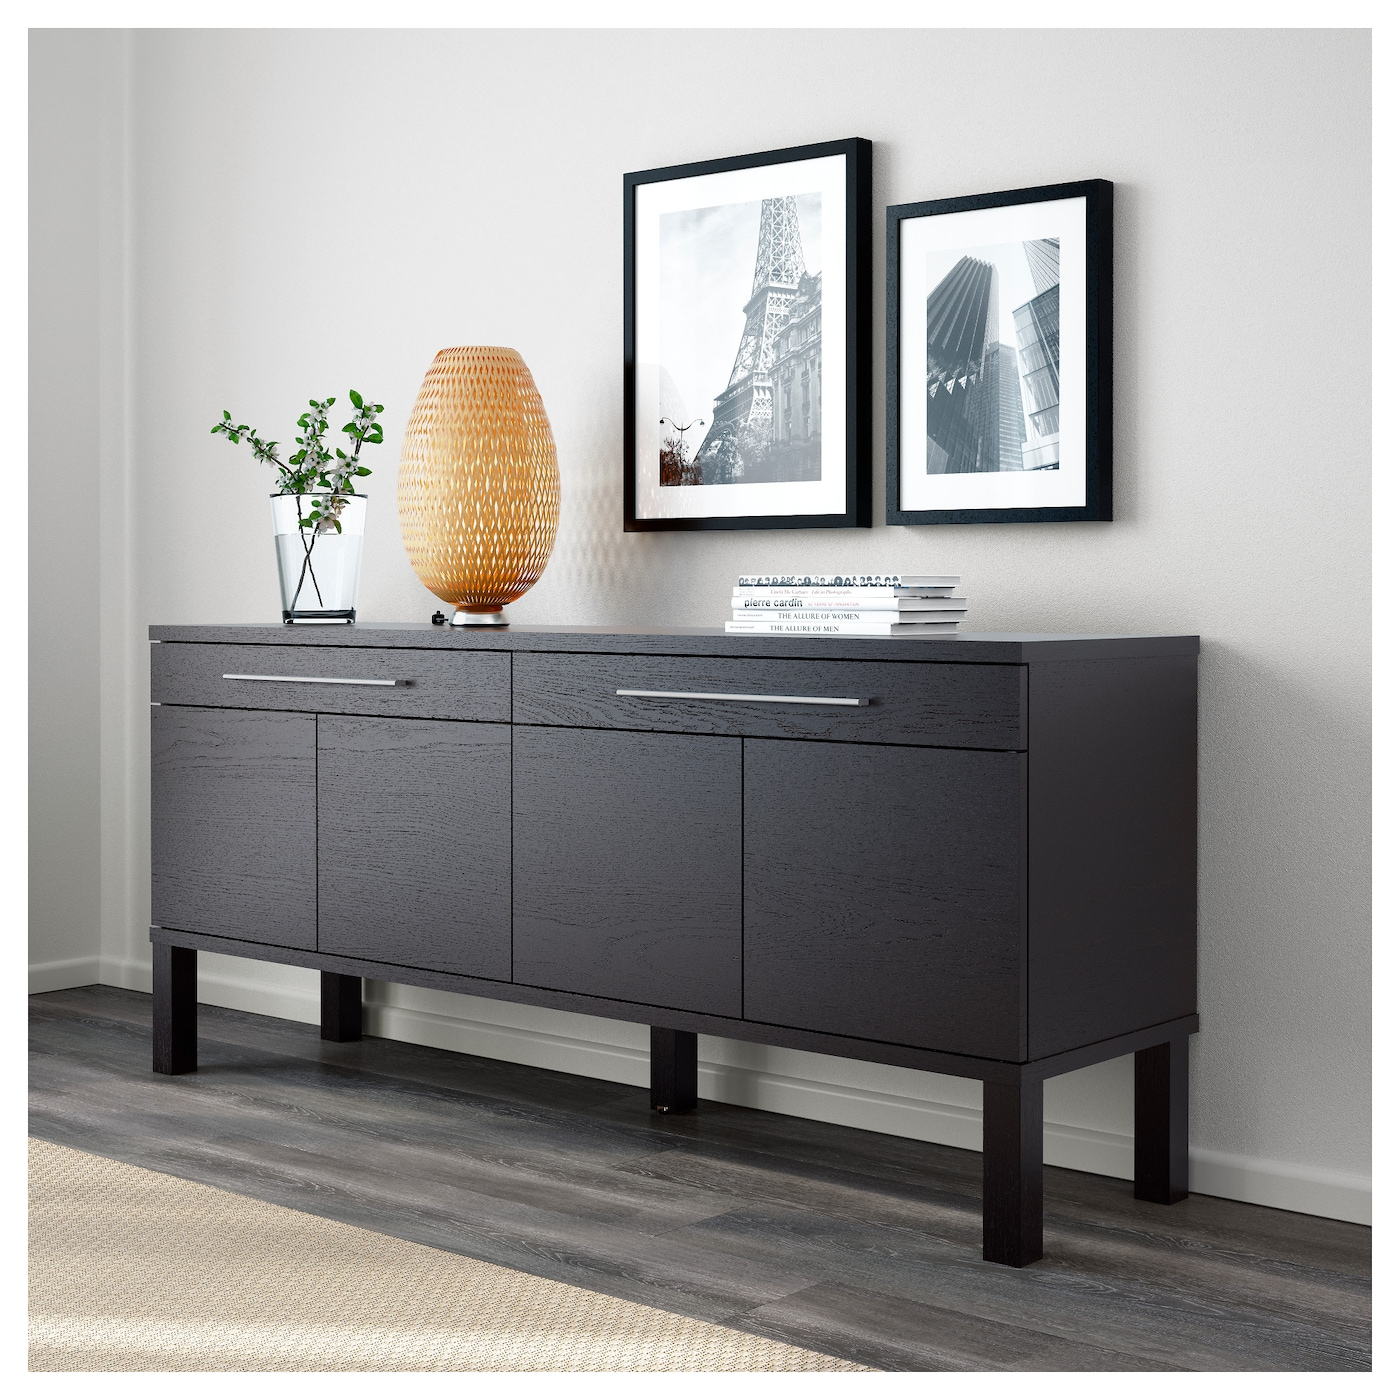 BJURSTA Sideboard Brown-black 155x68 Cm